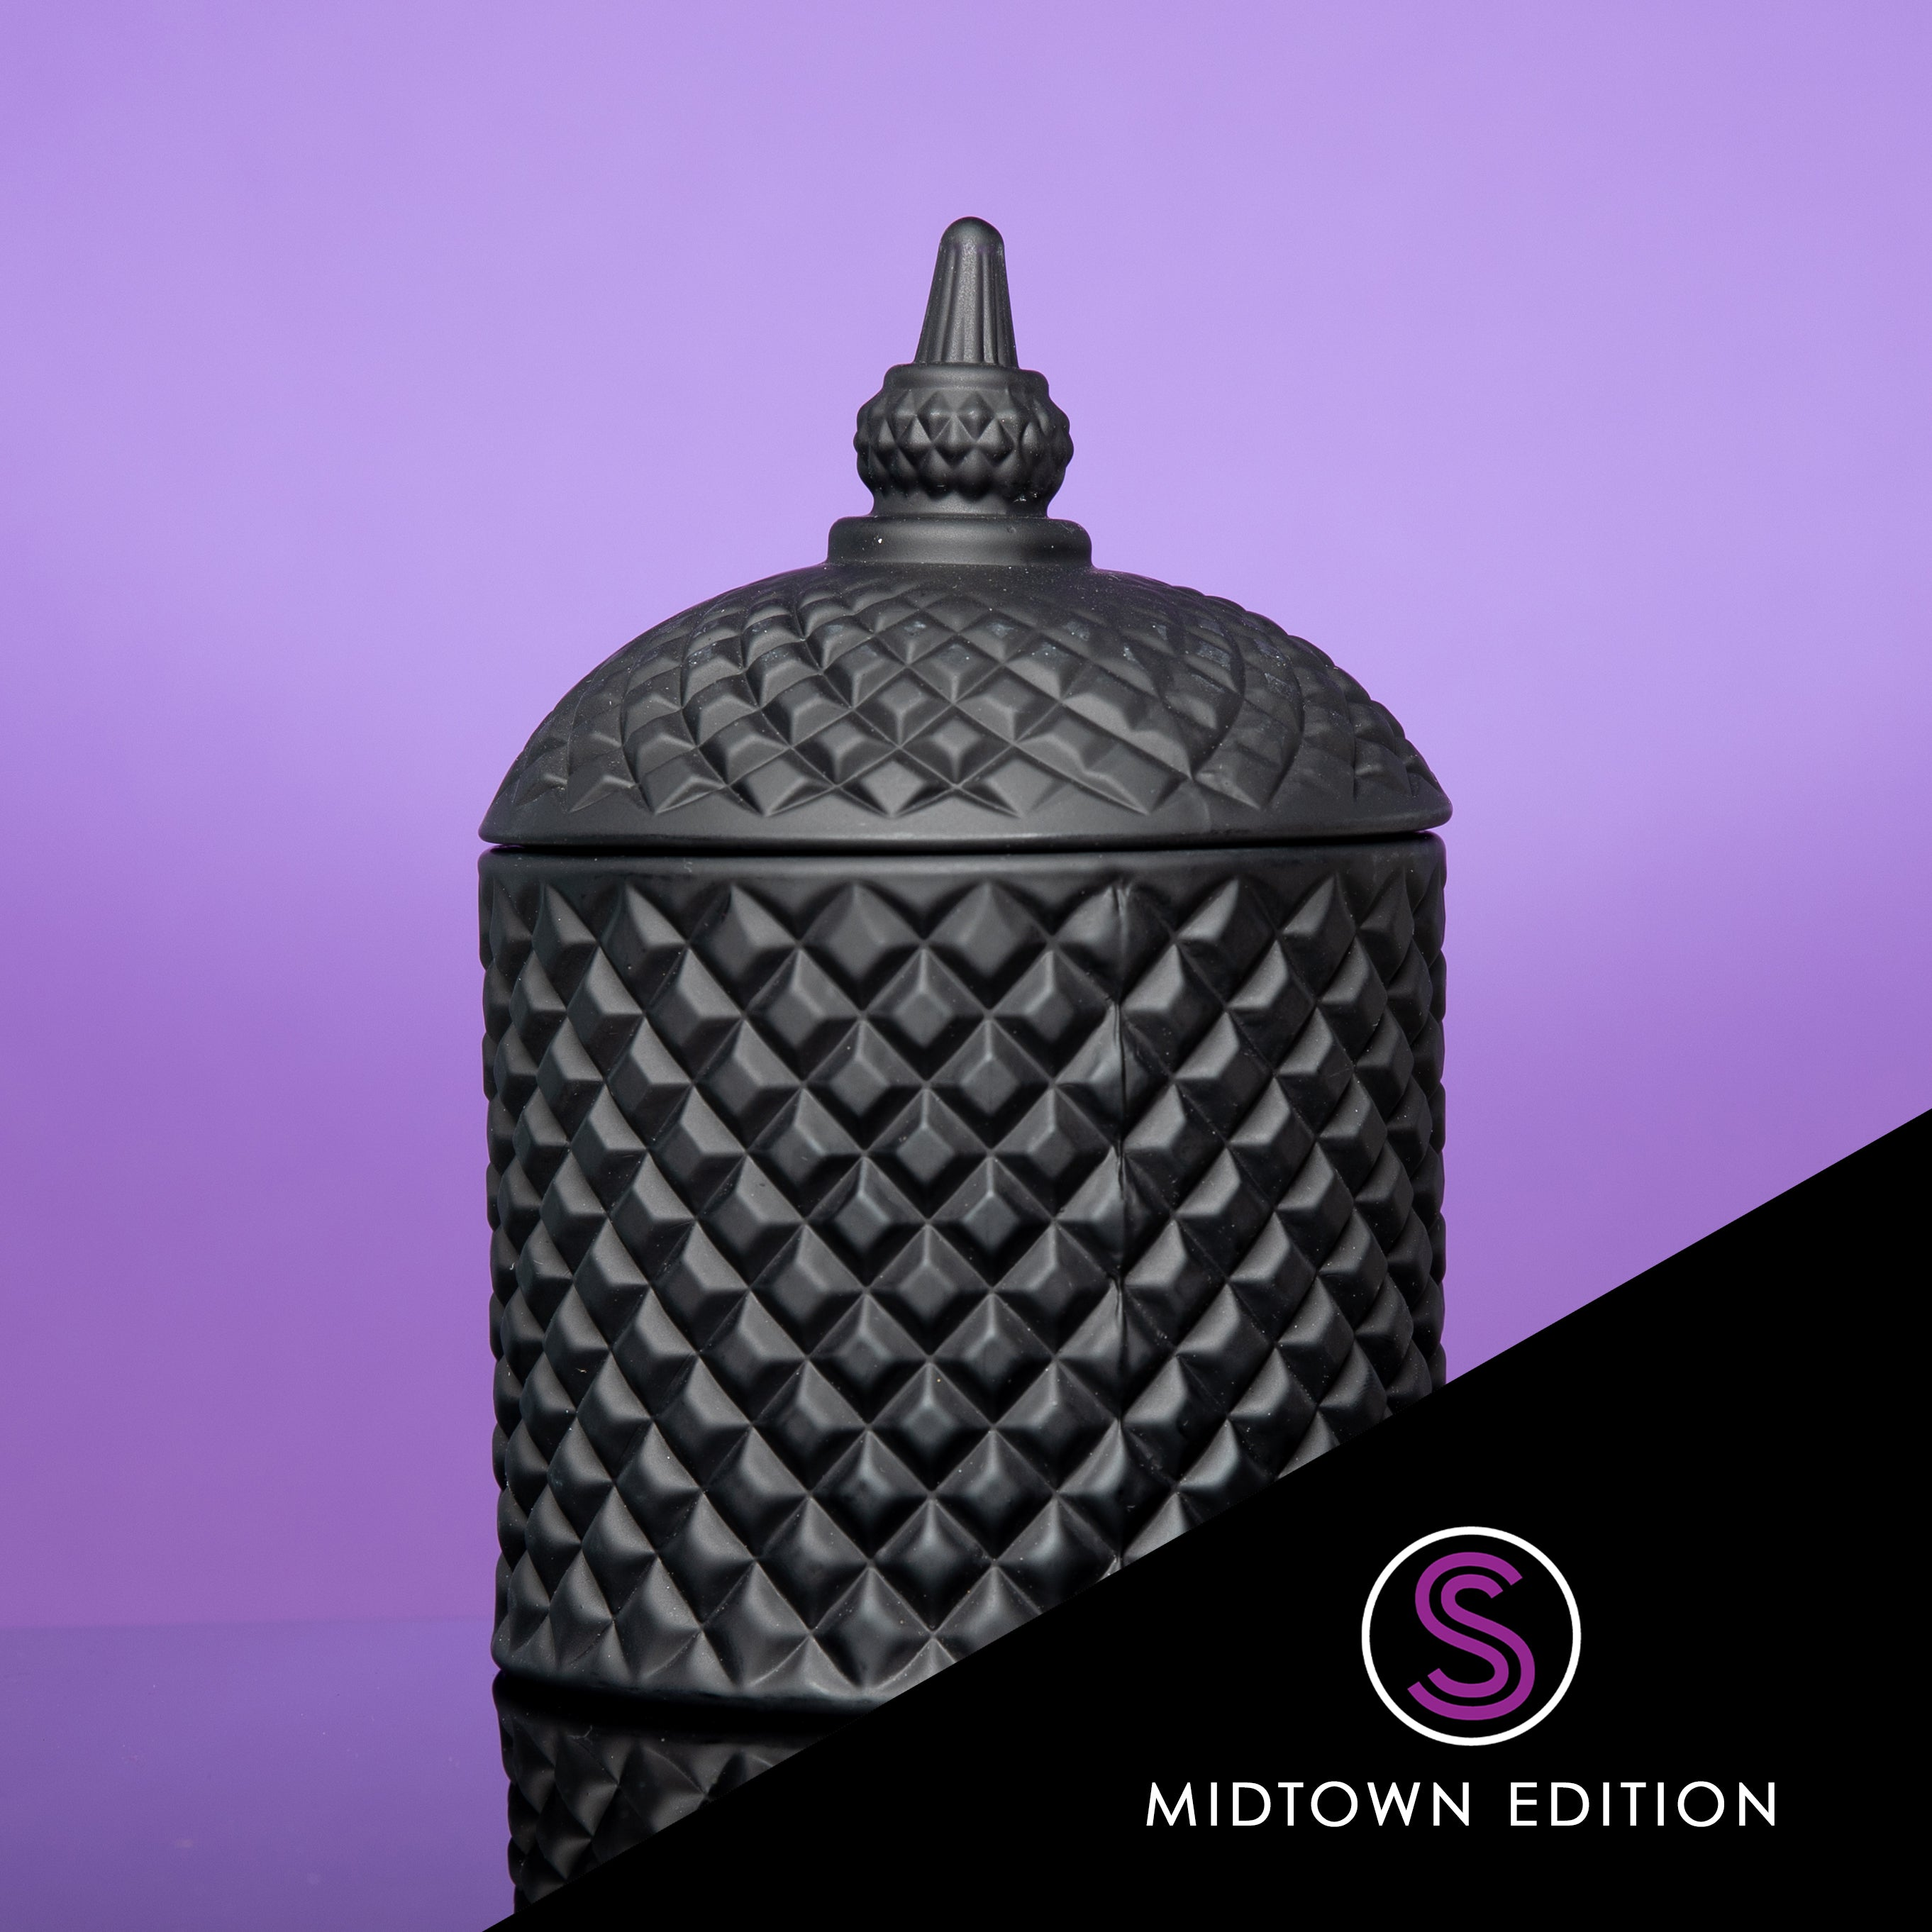 Midtown Edition-Luxury Edition (Matte Black)